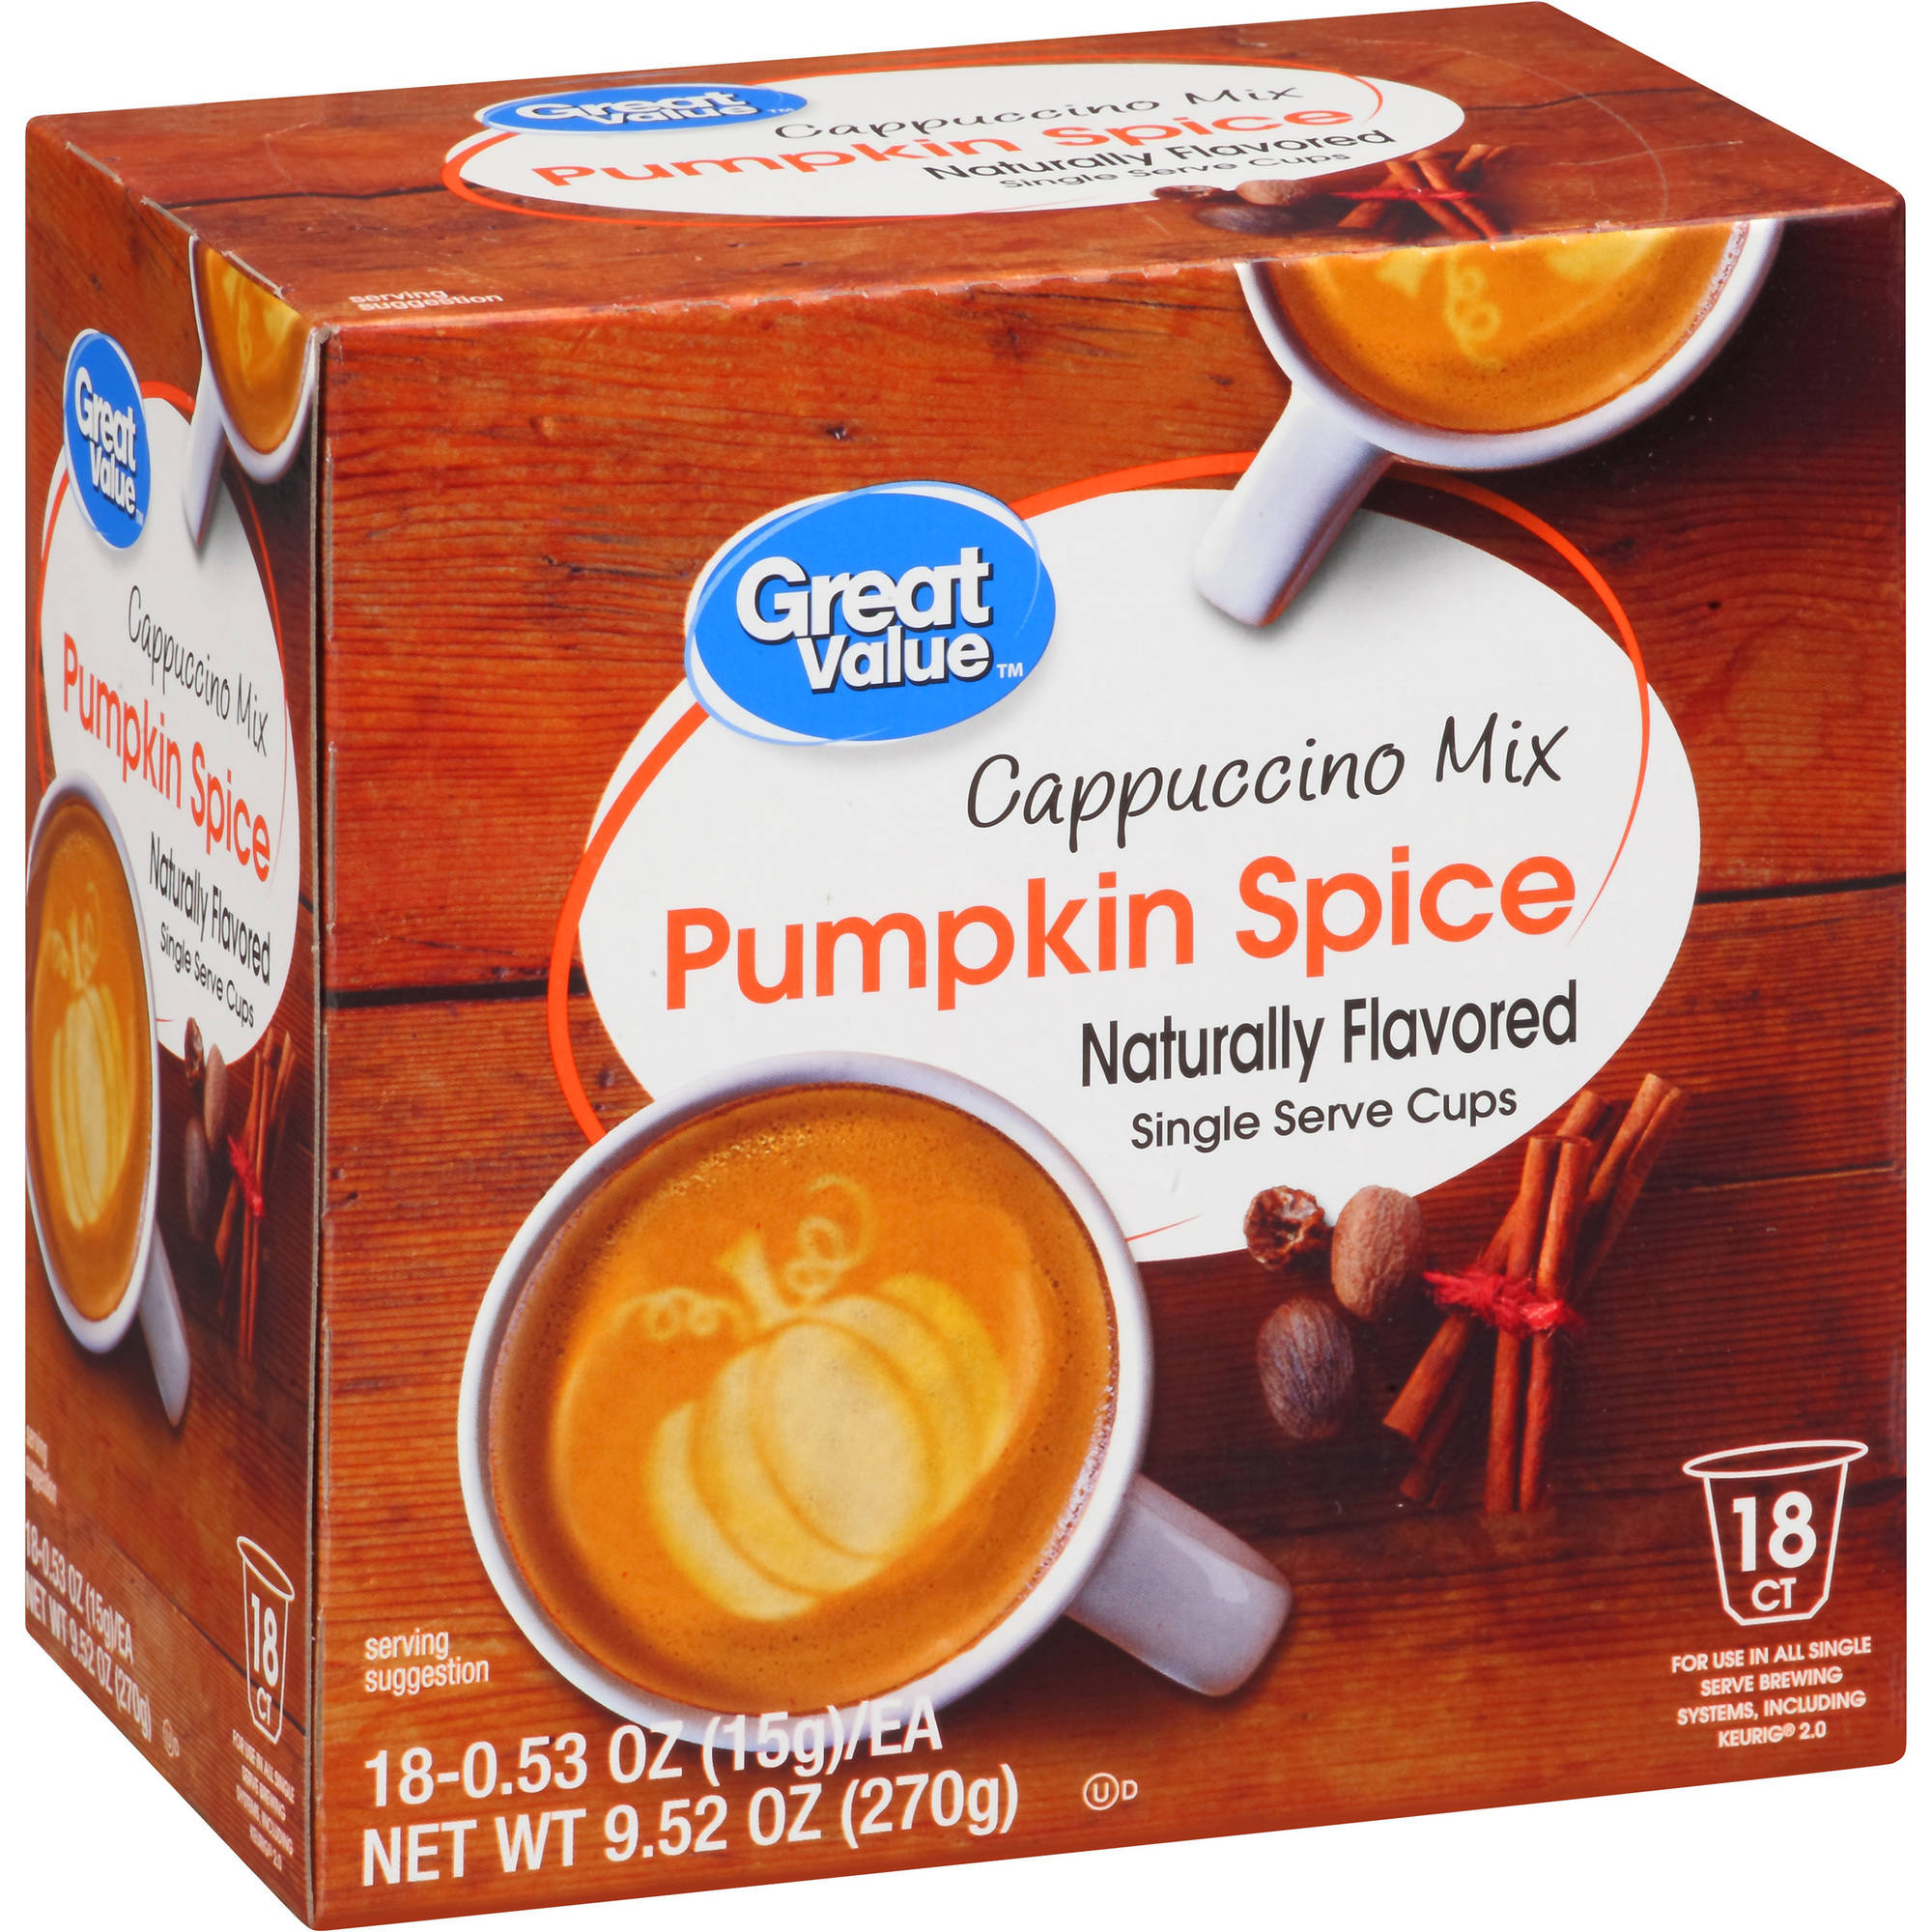 Great Value Pumpkin Spice Cappuccino Mix Naturally Flavored Single Serve Cups, 0.53 oz, 18 count